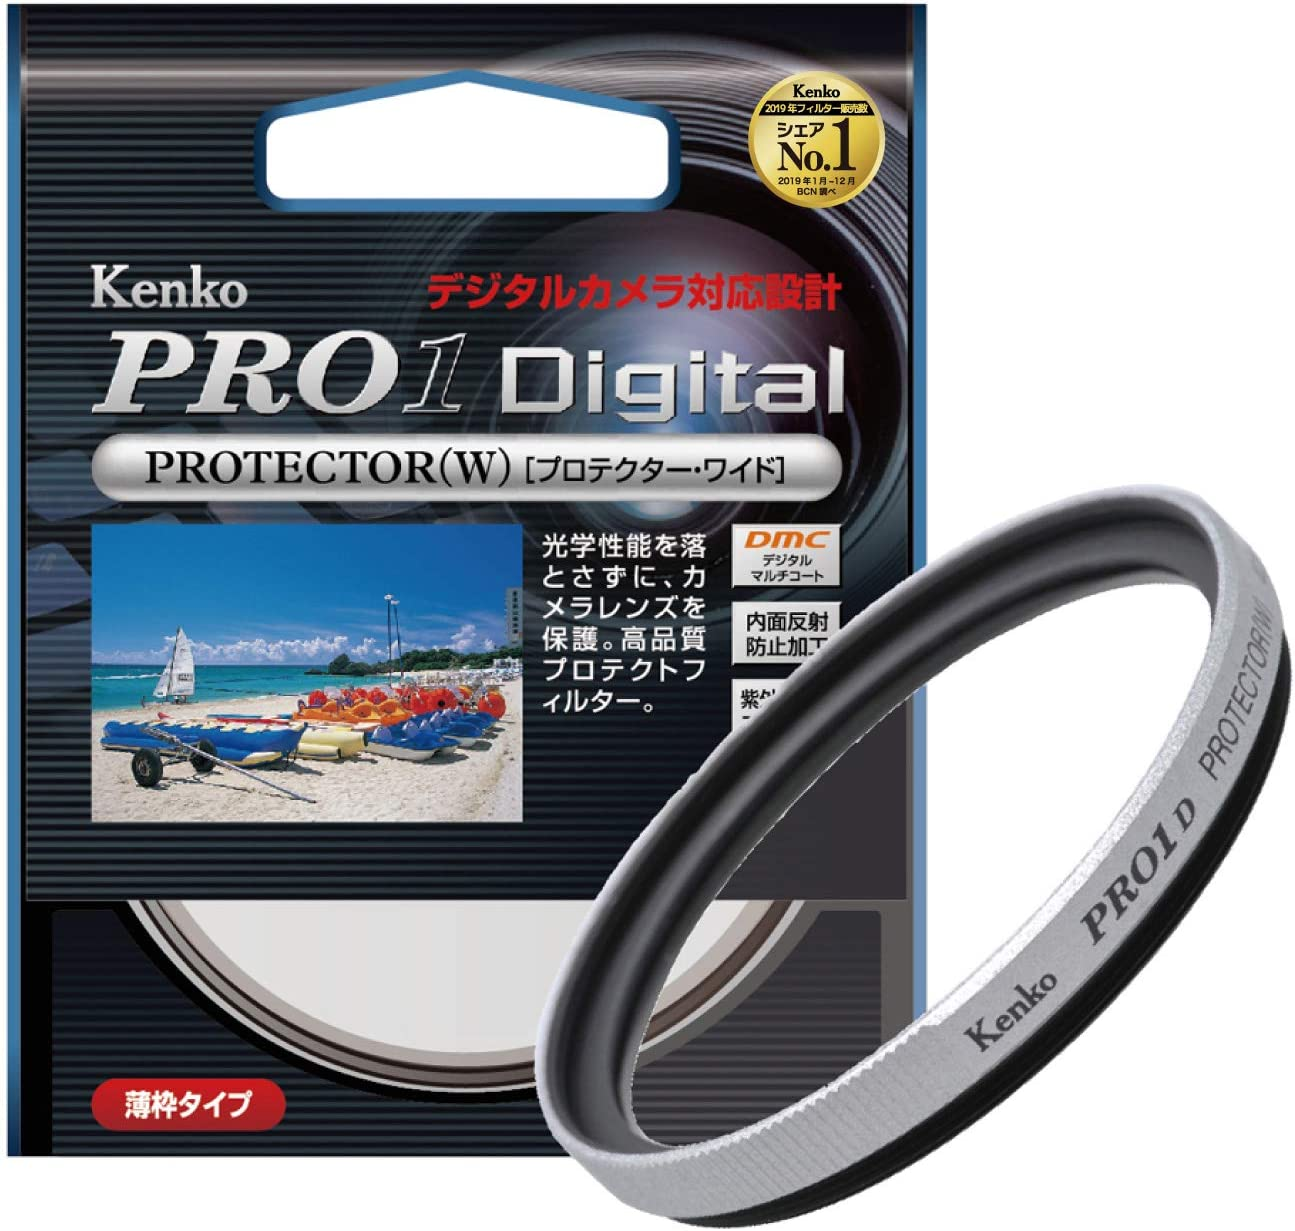 Kenko 40.5mm Smart Protector Mullti-Coated Camera Lens Filters